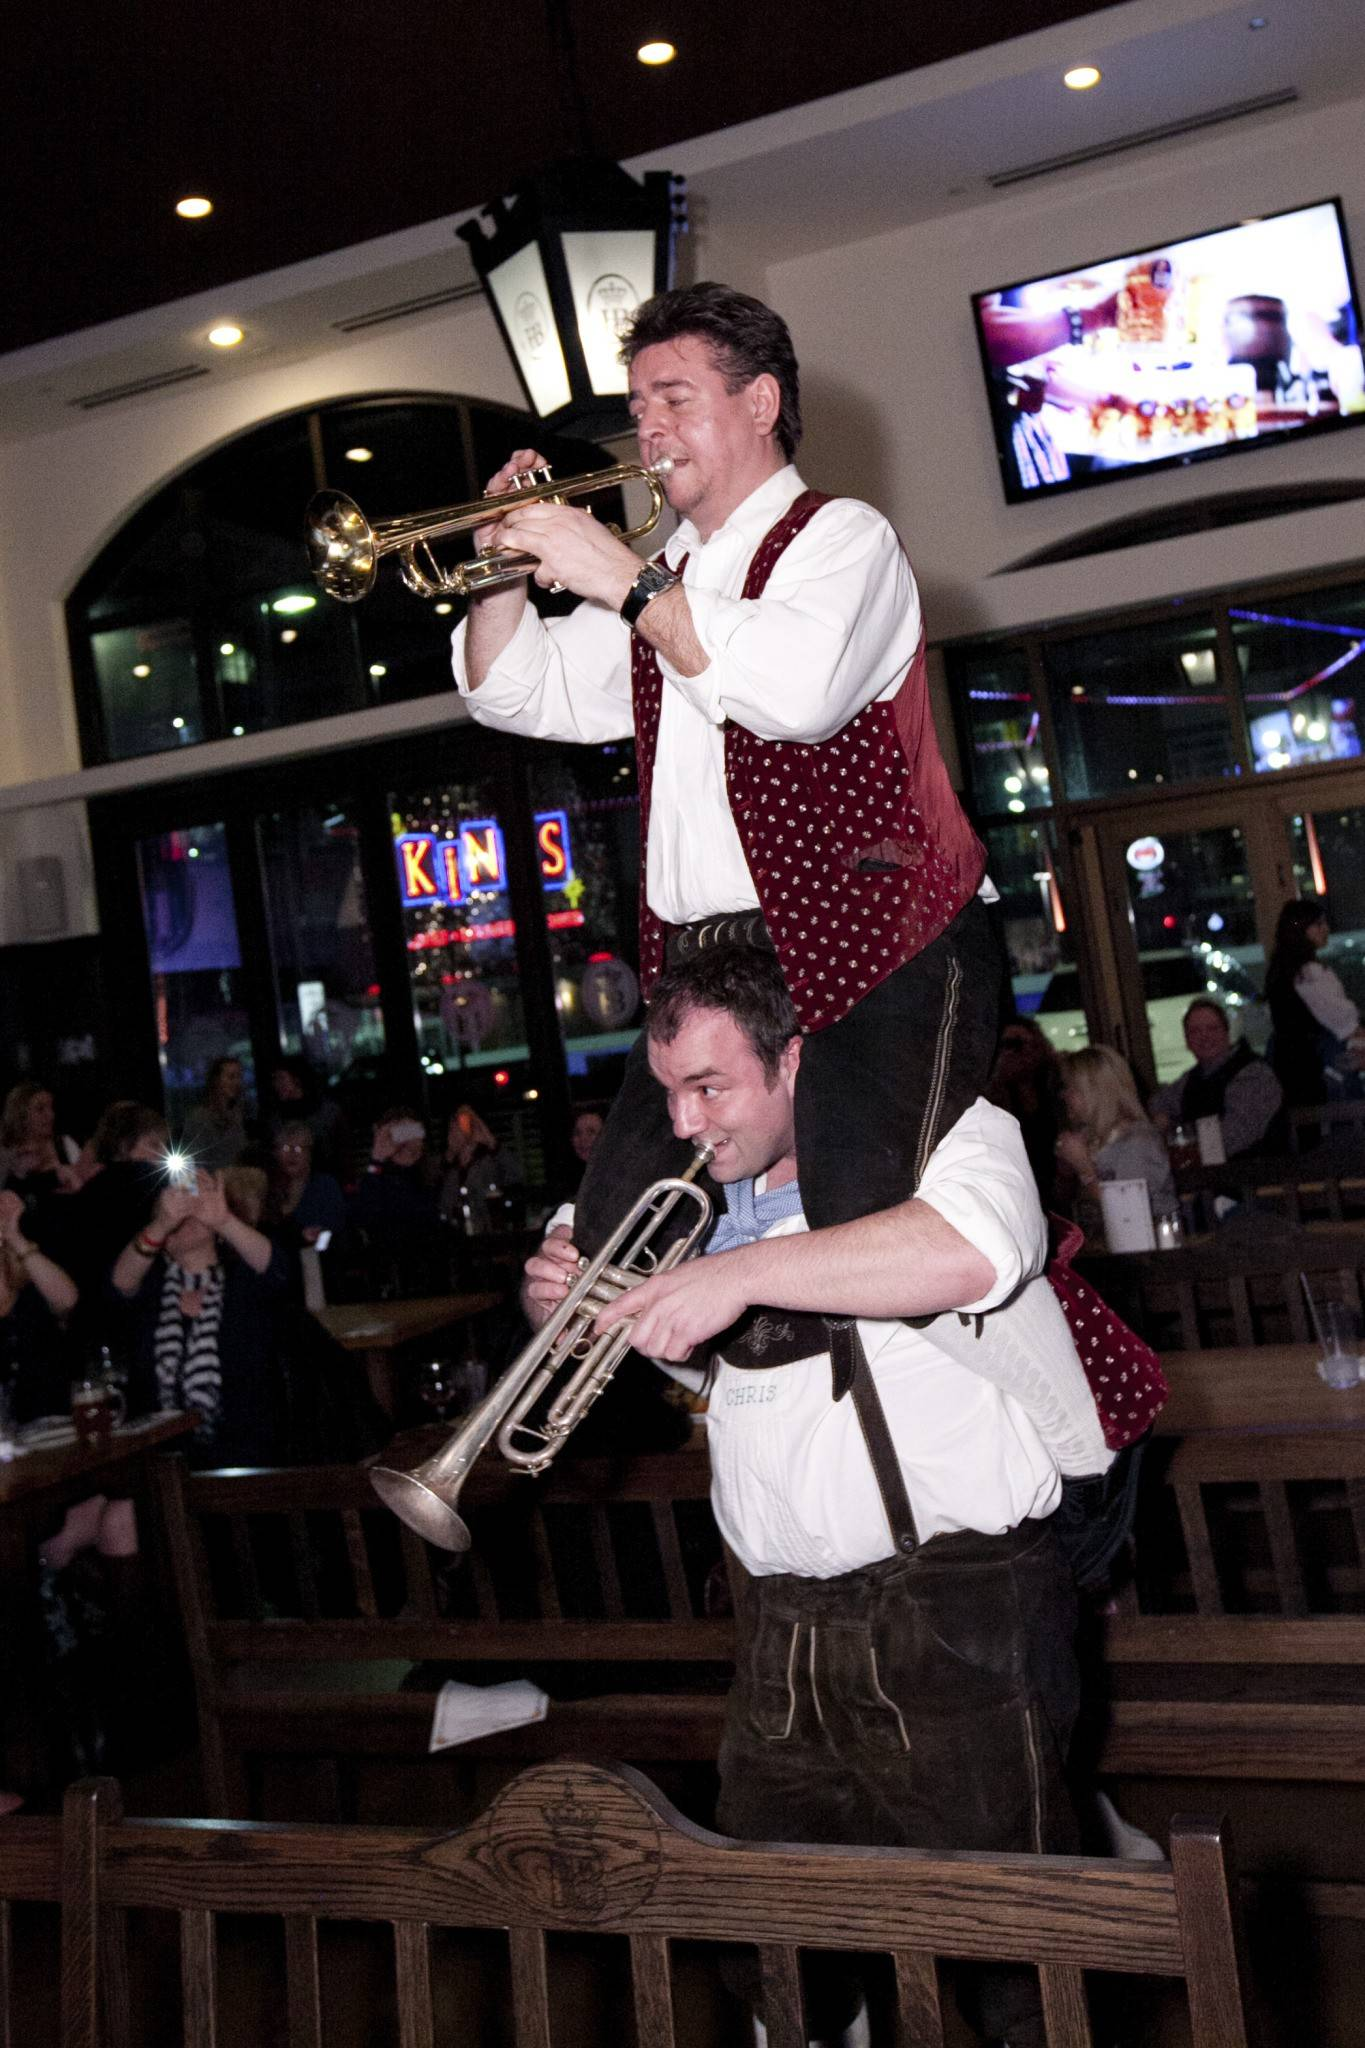 Hofbrauhaus Chicago's annual Oktoberfest celebration, which includes performances by German music groups, kicks off Friday in Rosemont.